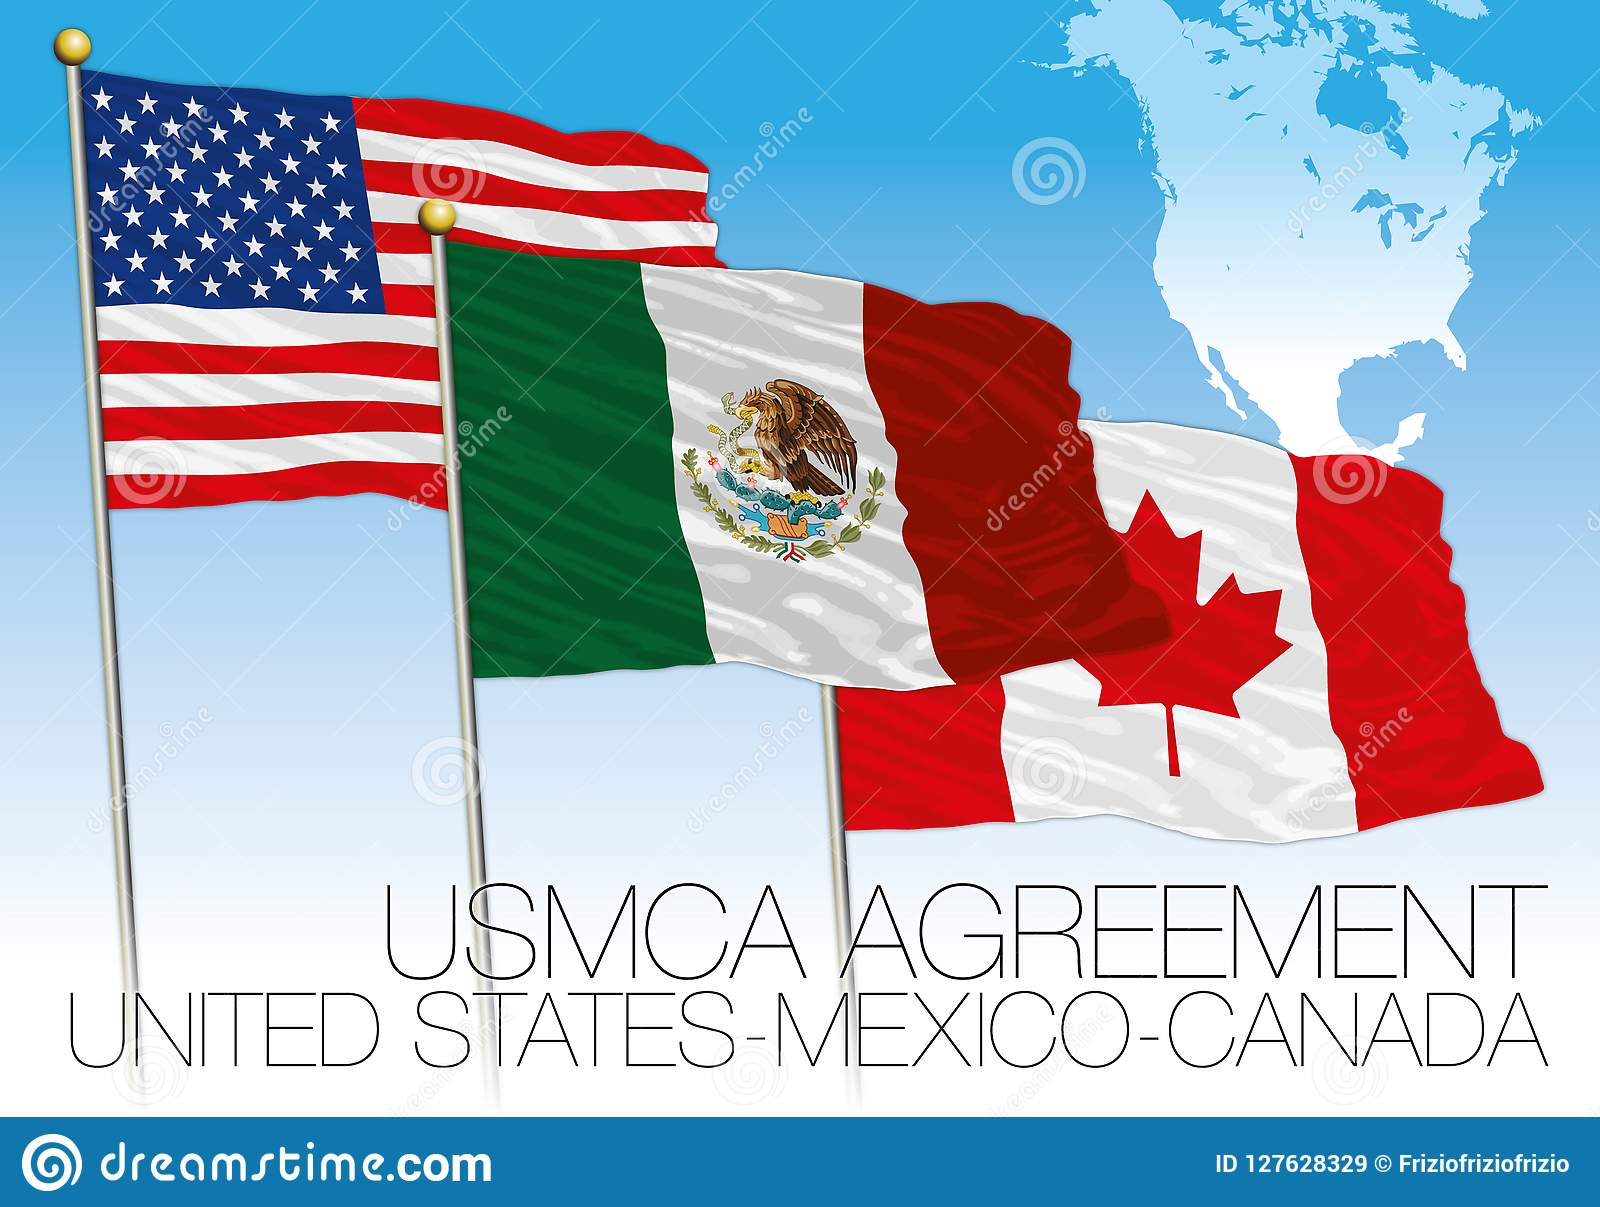 USMCA Agreement 2018 Flags, United States, Mexico, Canada With Map ...